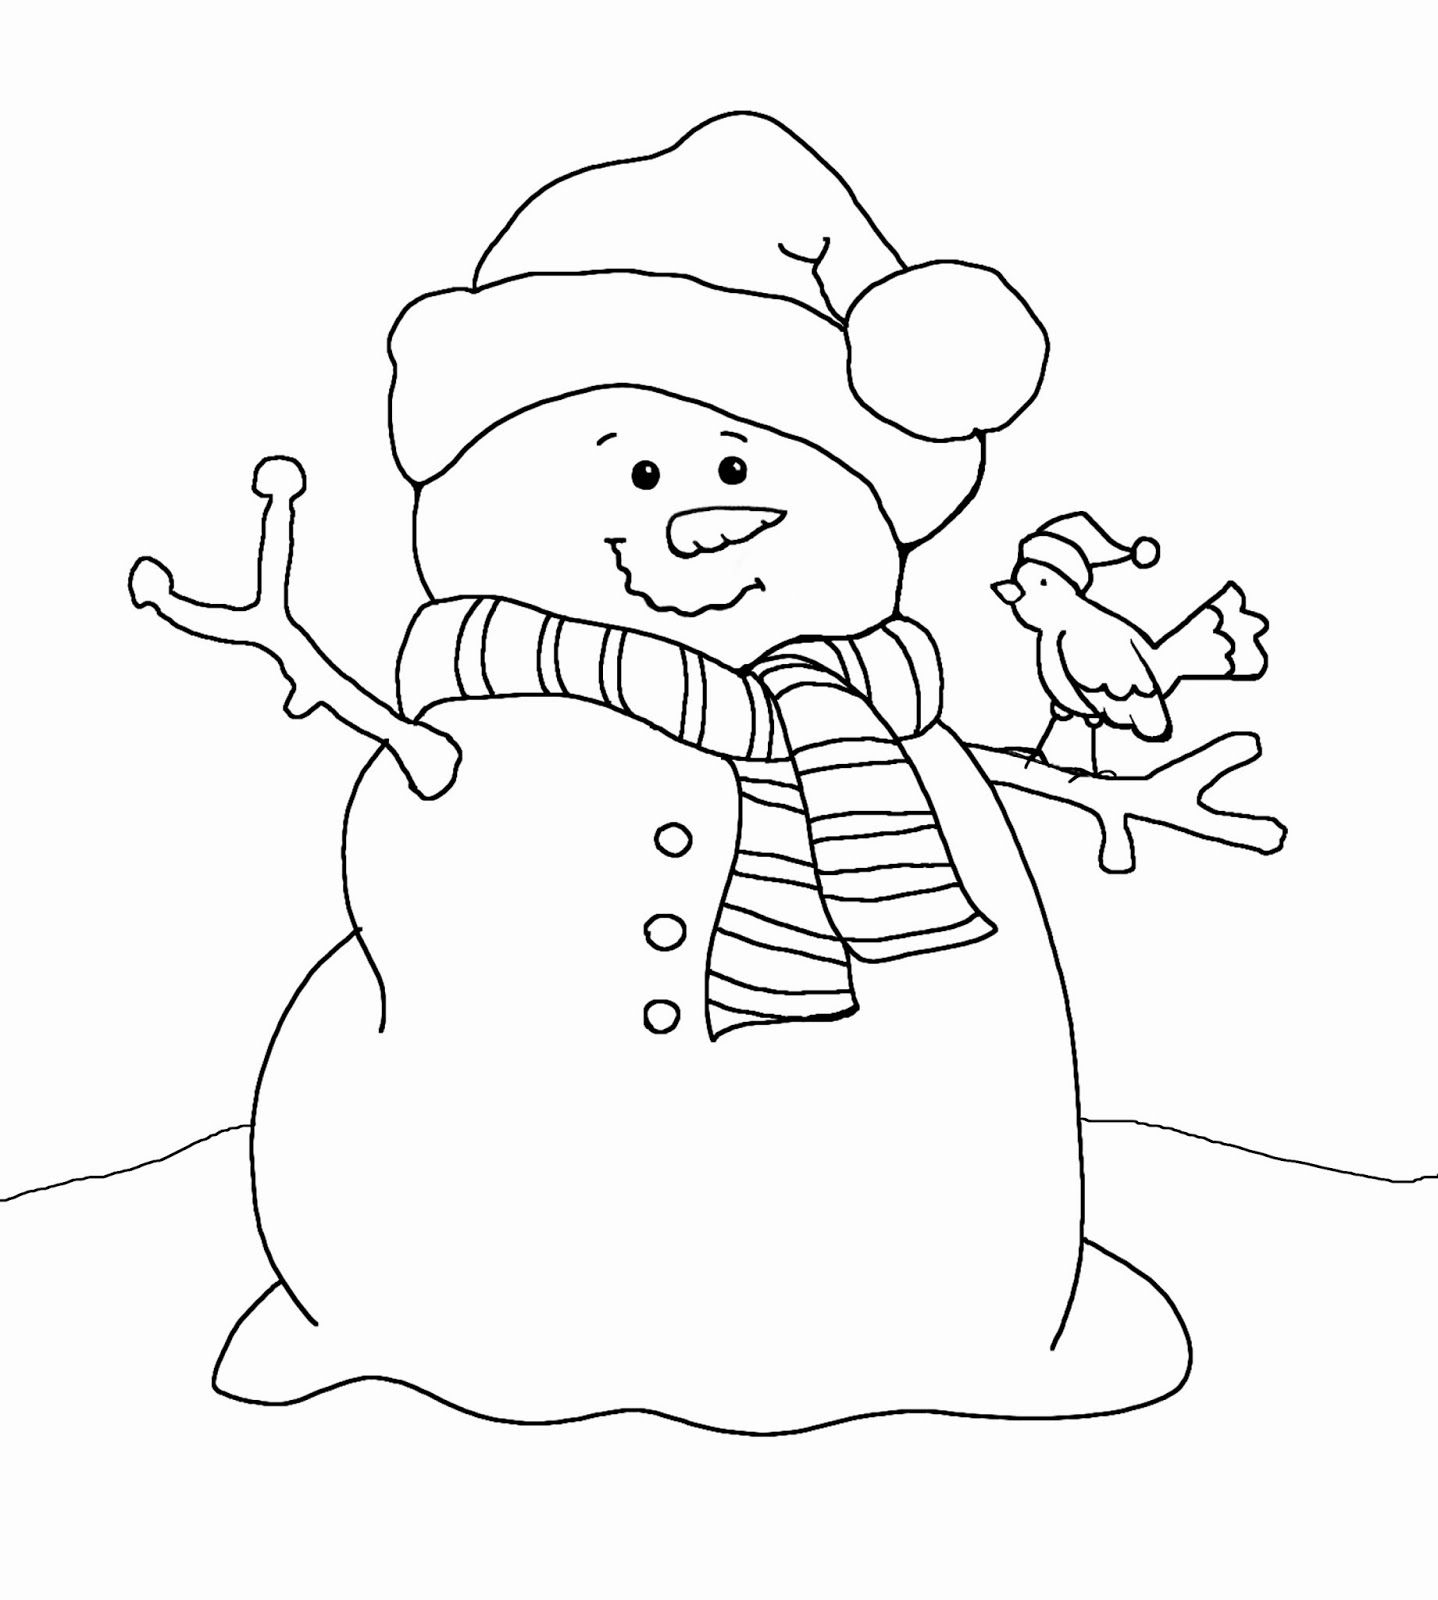 Free Clip Art Free Christmas Snowmen Snowman Coloring Pages Christmas Quilt Patterns Christmas Coloring Pages